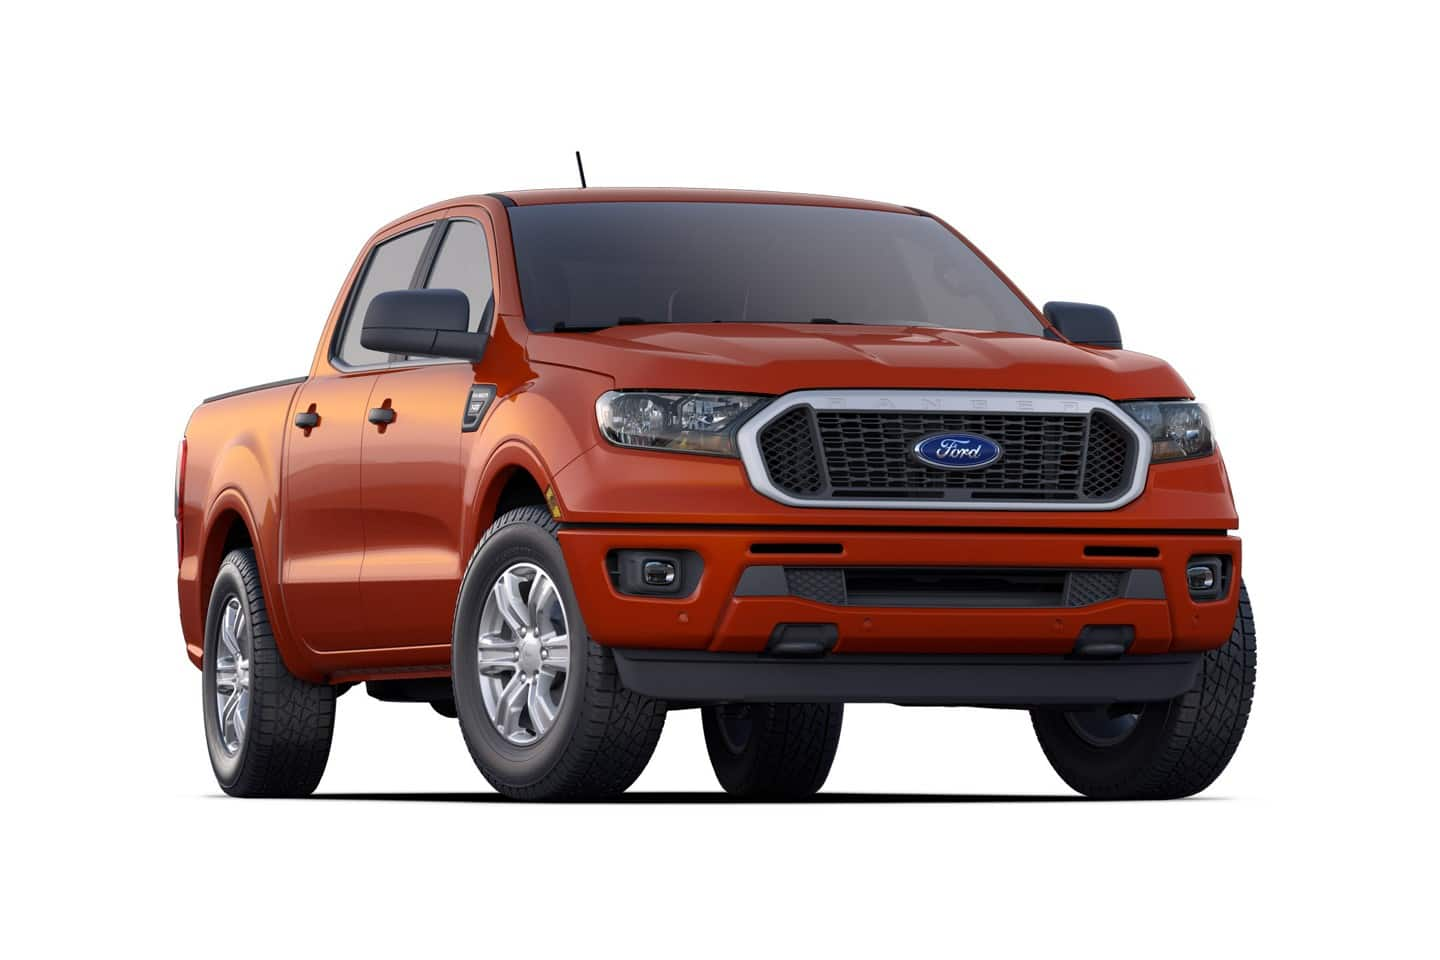 73 The Best 2019 Ford F100 Price And Release Date